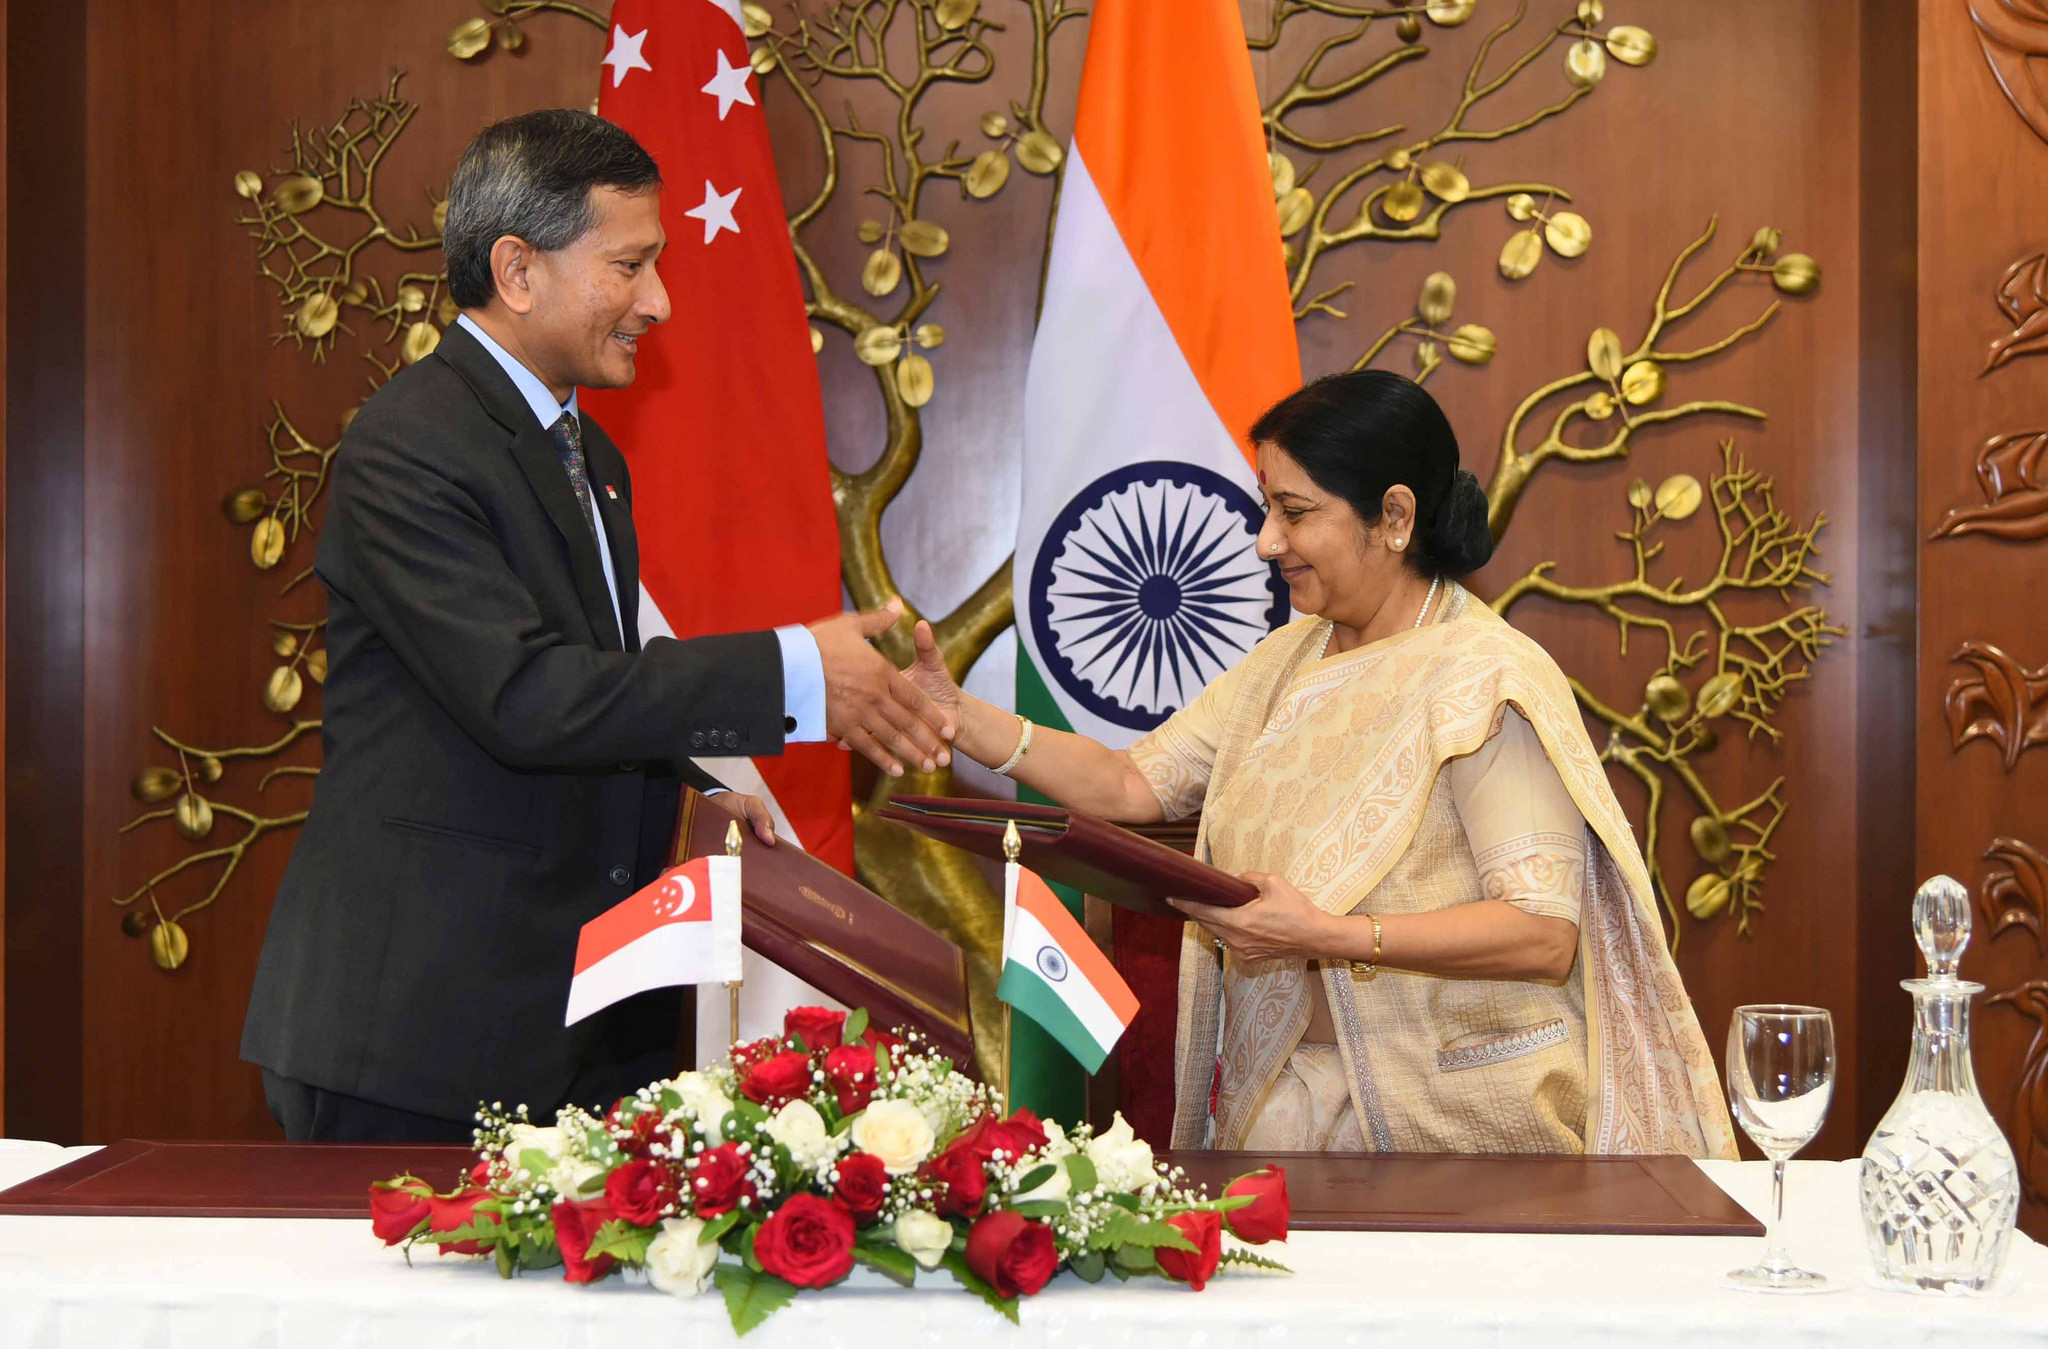 Sushma Swaraj with Dr. Vivian Balakrishnan, Singapore's Minister for Foreign Affairs on 12 October 2015 Photo courtesy: Press Information Bureau/MEA